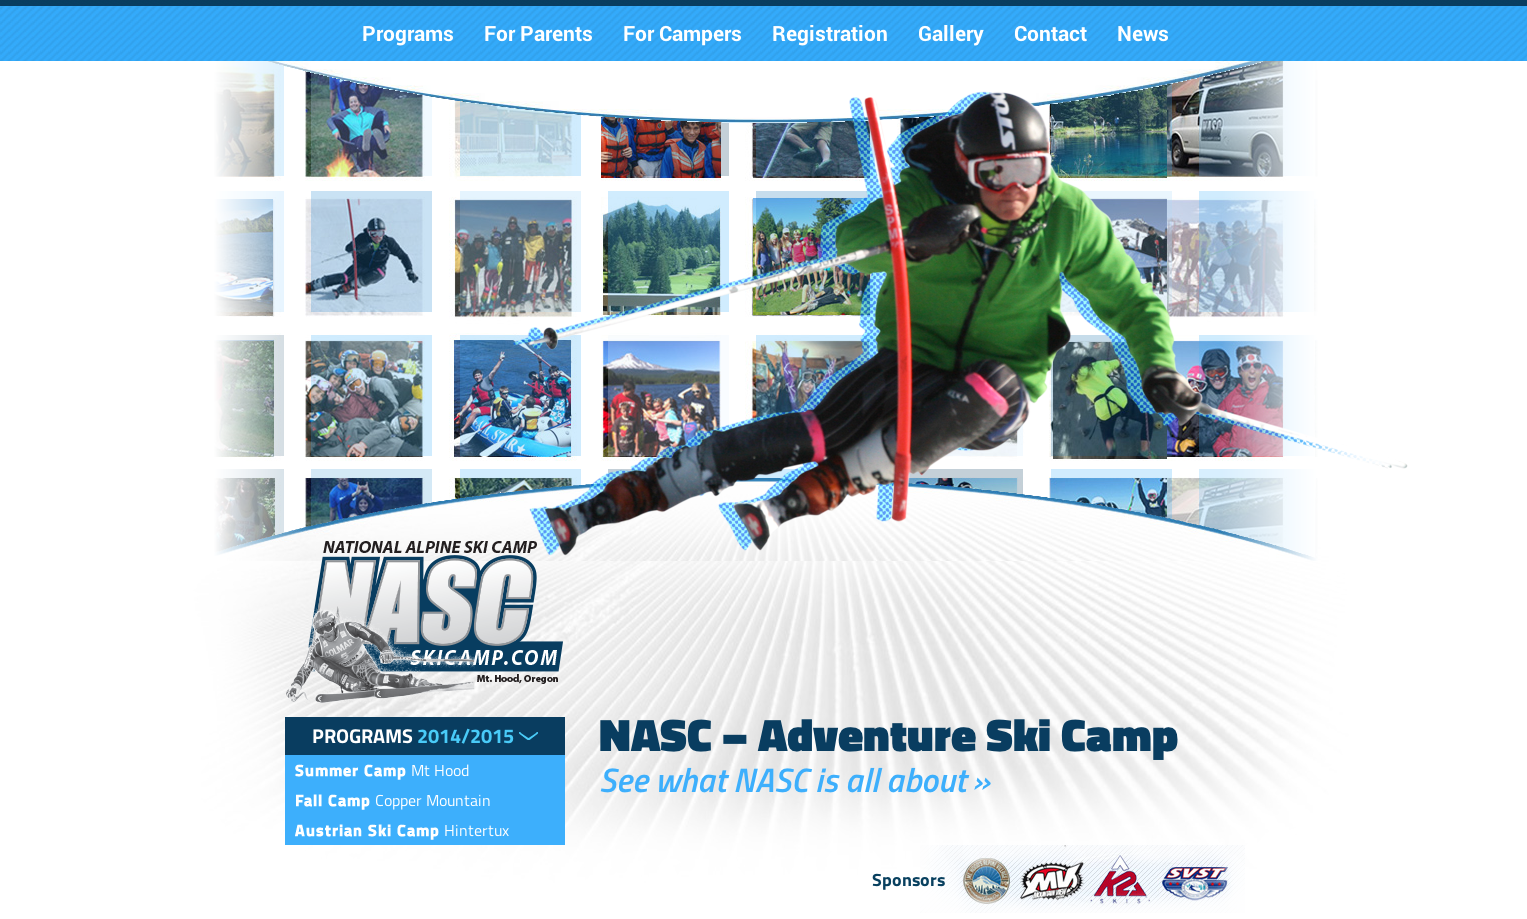 National Alpine Ski Camp Website